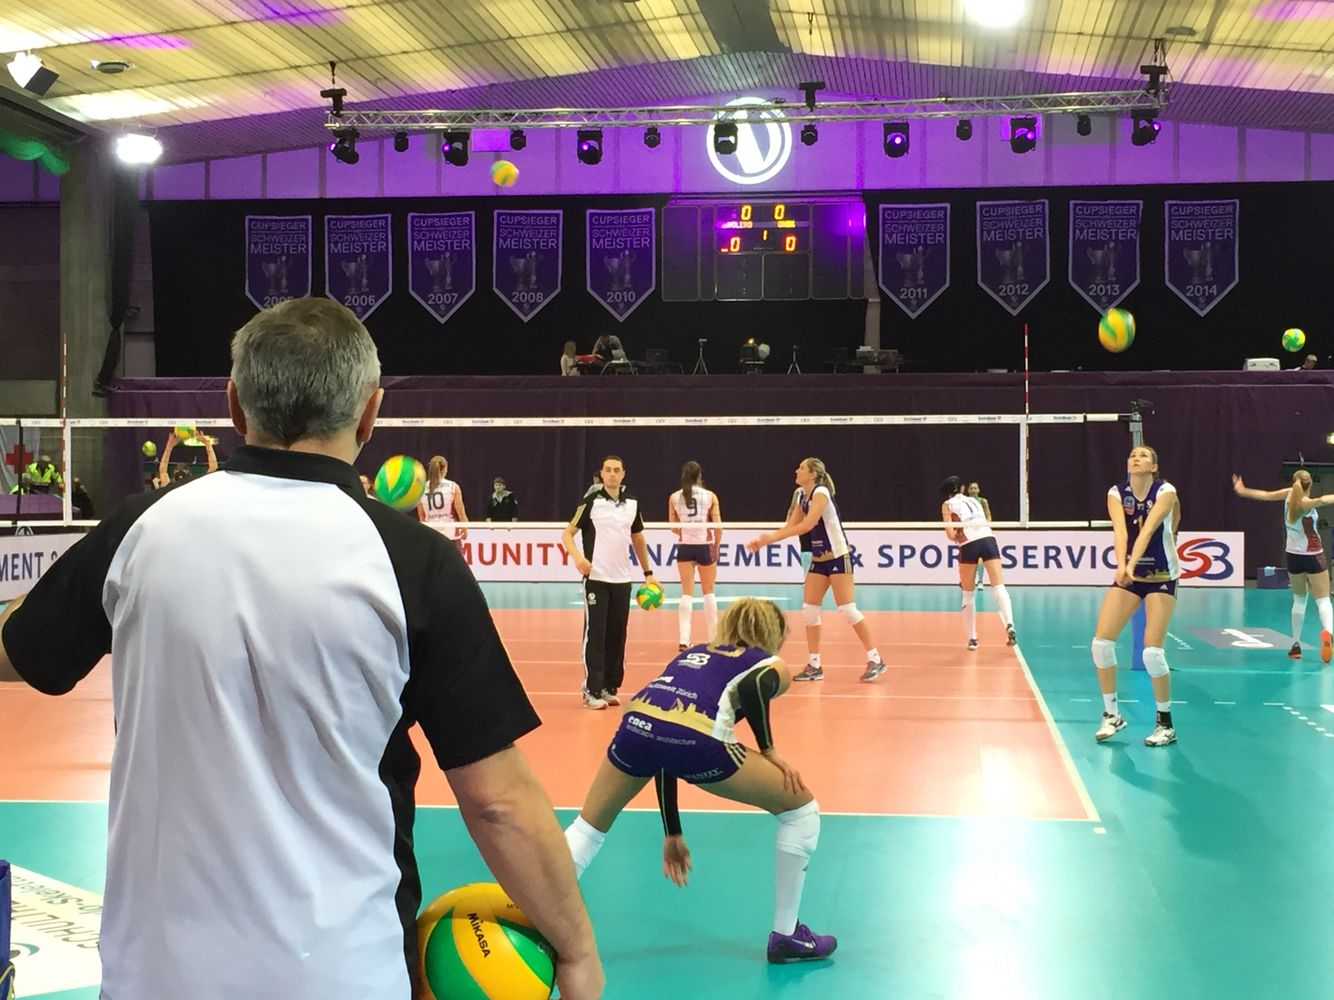 Volerozuerich Playing In The Cev Championsleague In Zurich Volleyball Sport Sports Volleyball Champions League